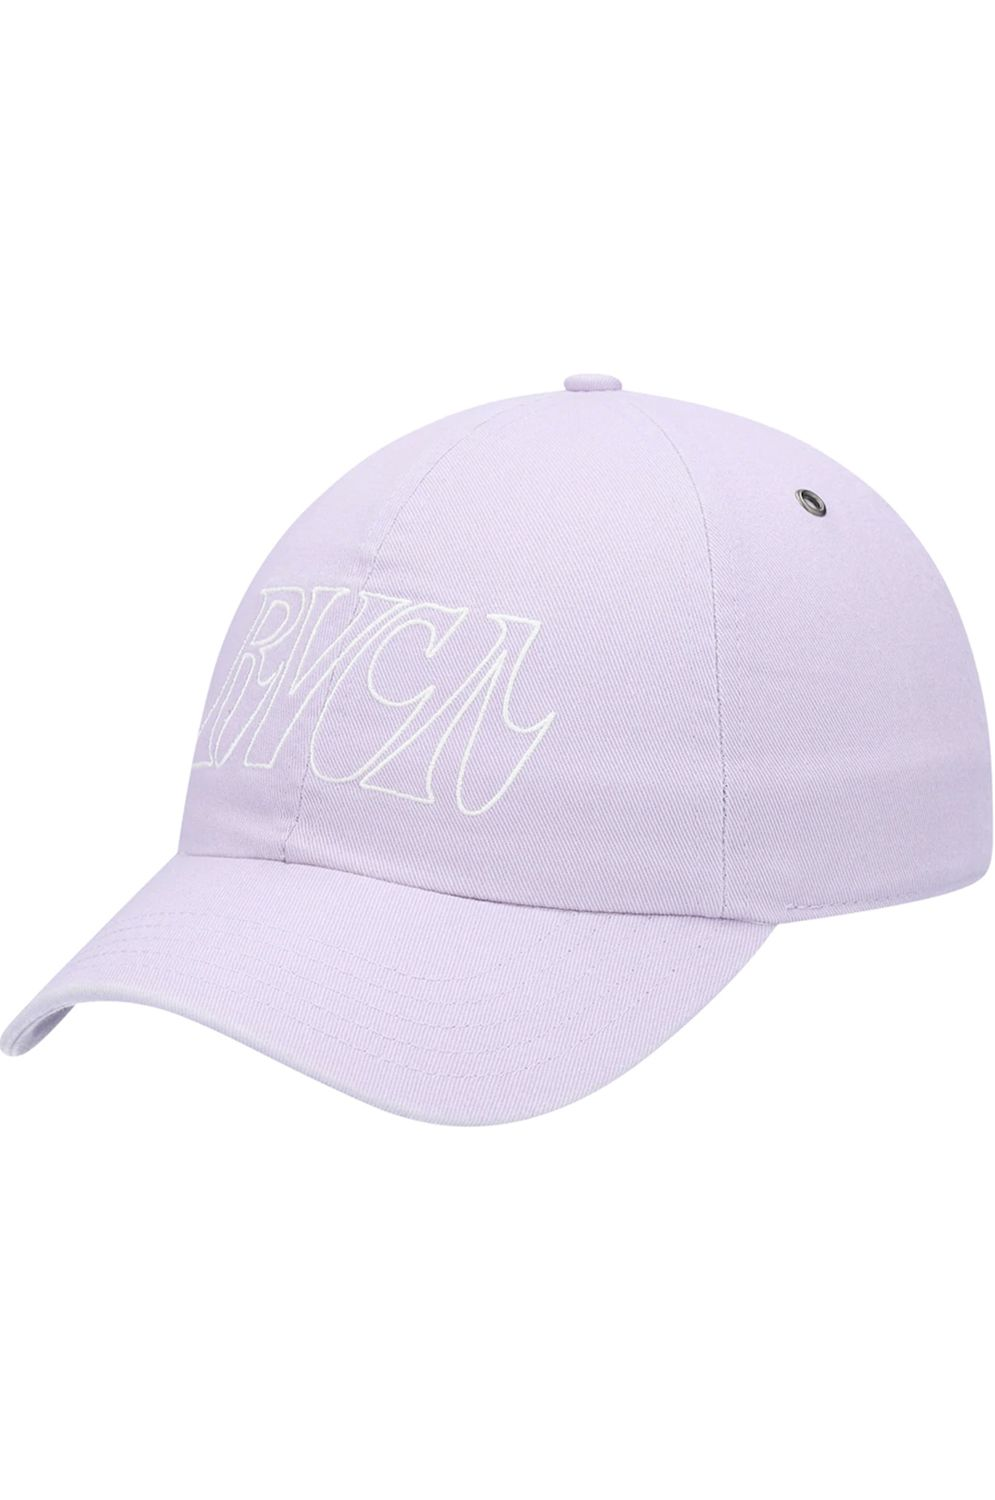 Bone RVCA STAPLE DAD HAT Lavender